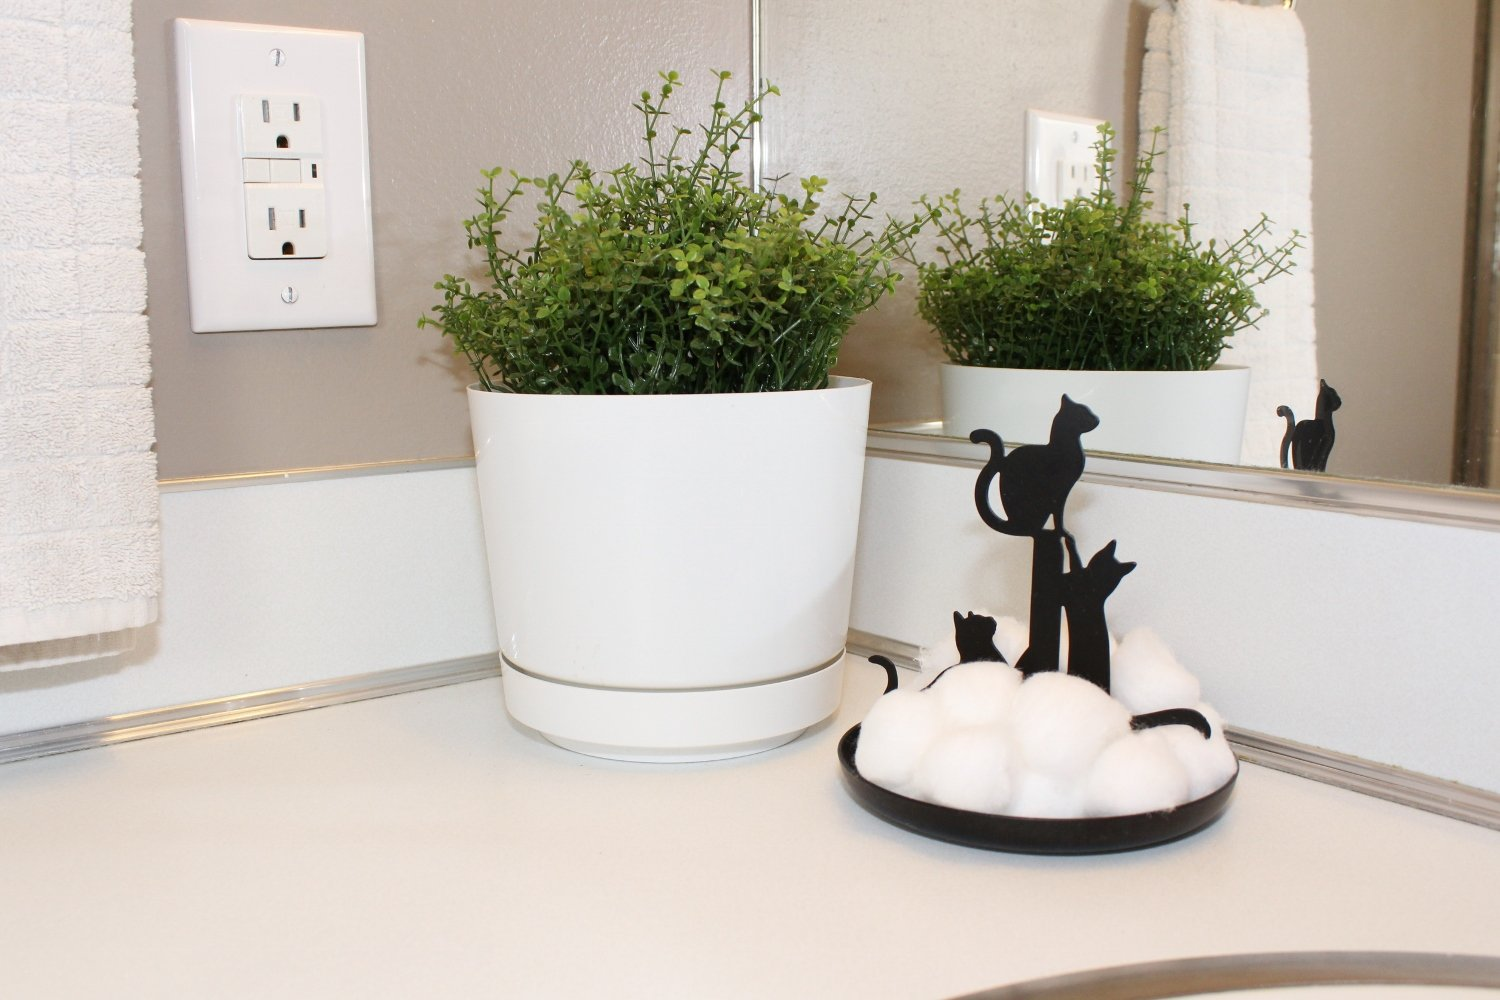 White countertop in mid-century modern bathroom with cat cotton ball holder and houseplant